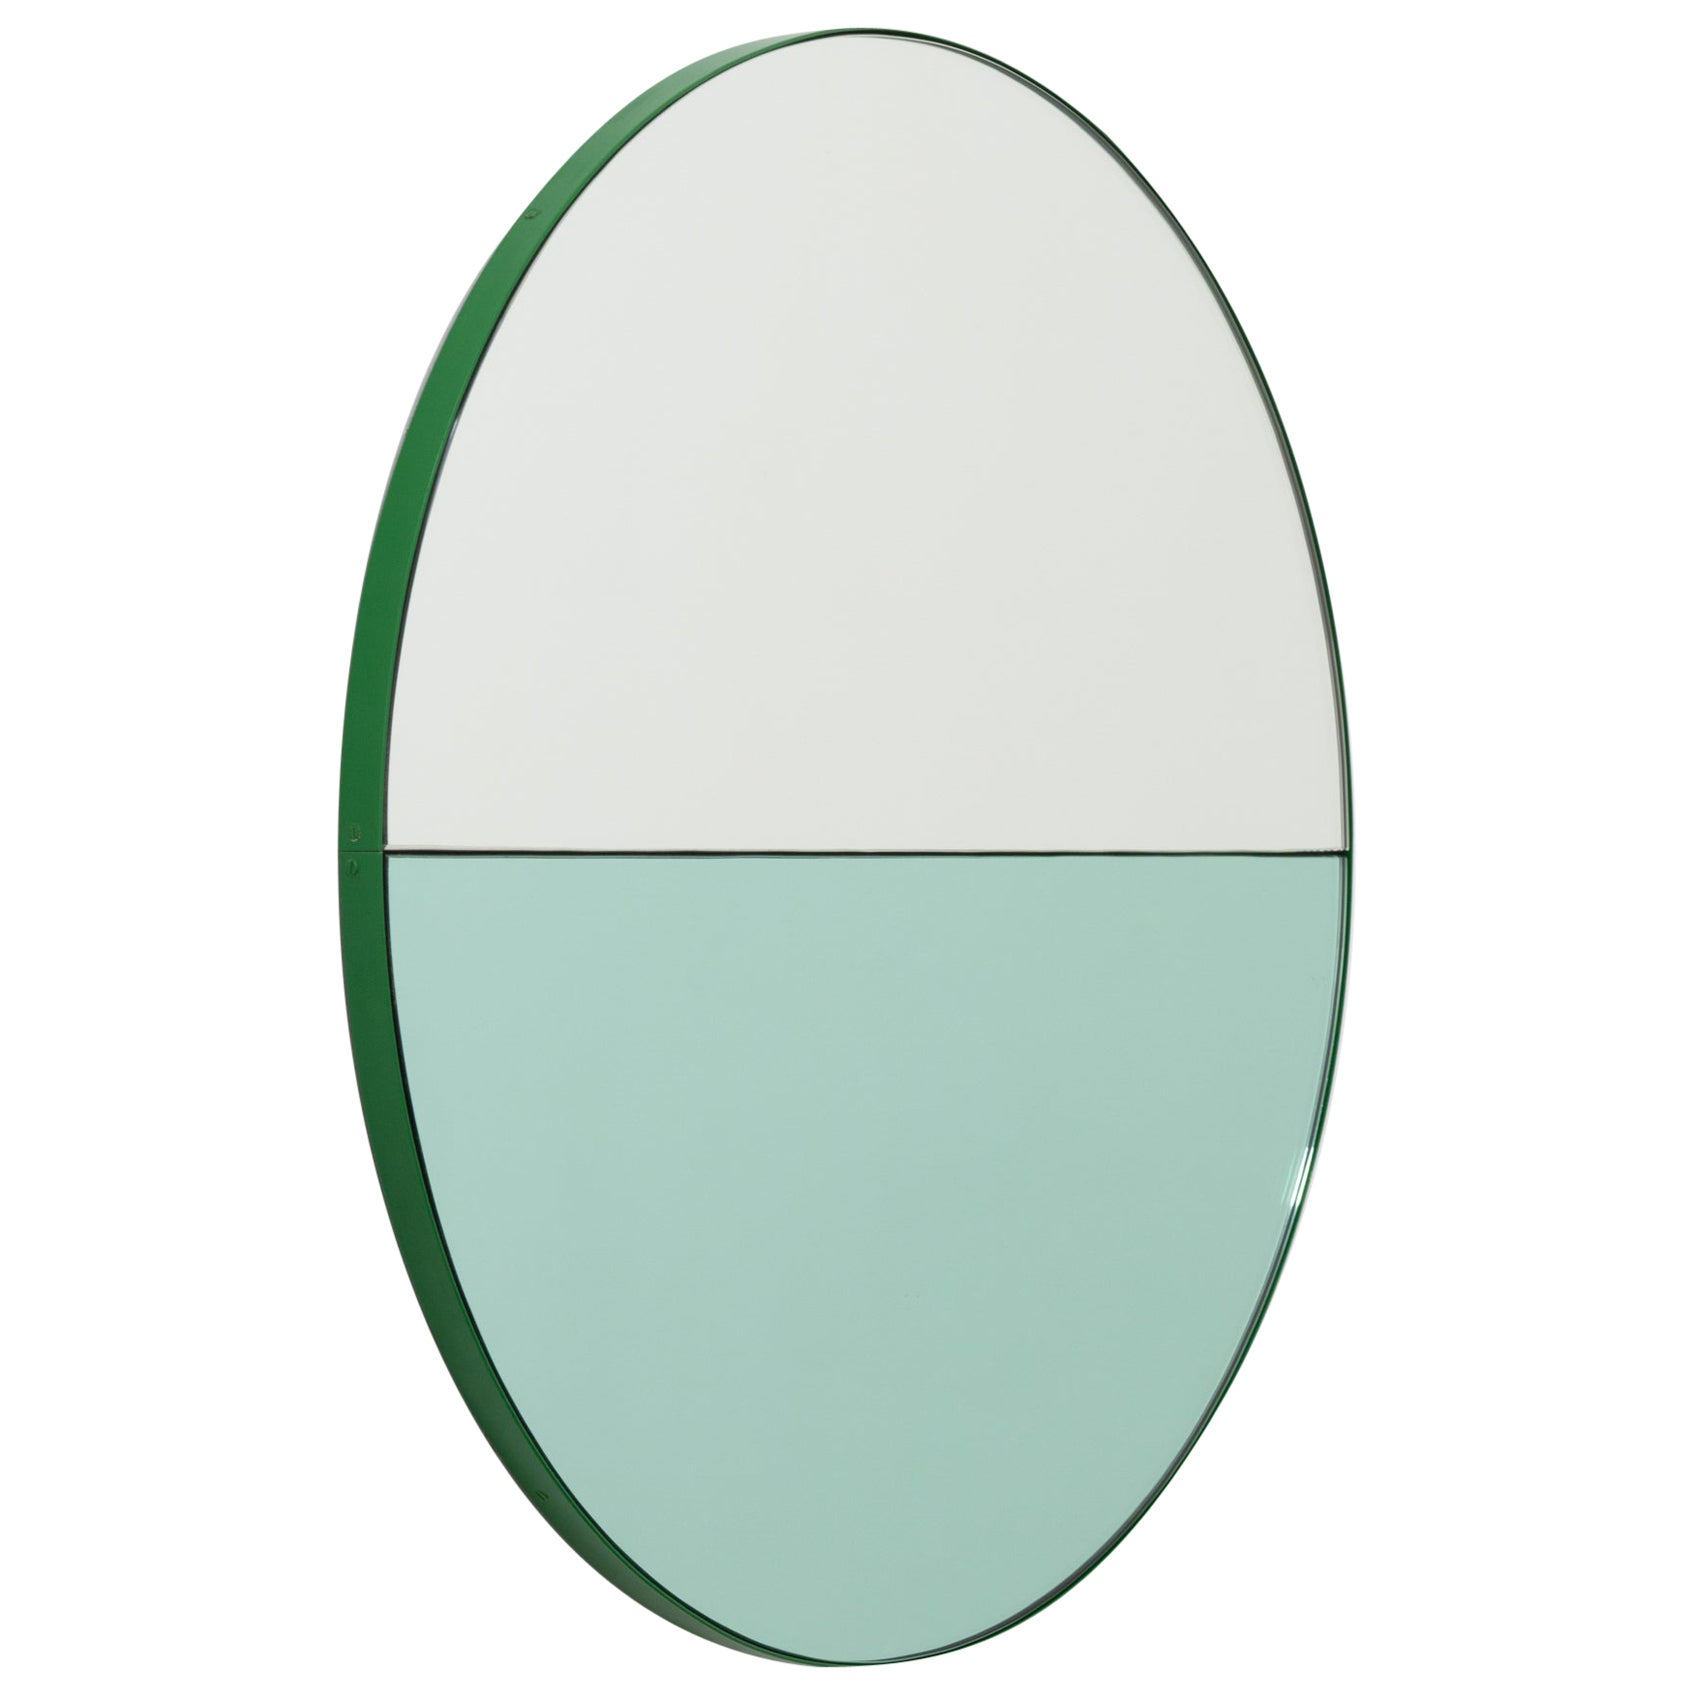 Orbis Dualis Mixed 'Green + Silver' Round Mirror with Green Frame, Oversized